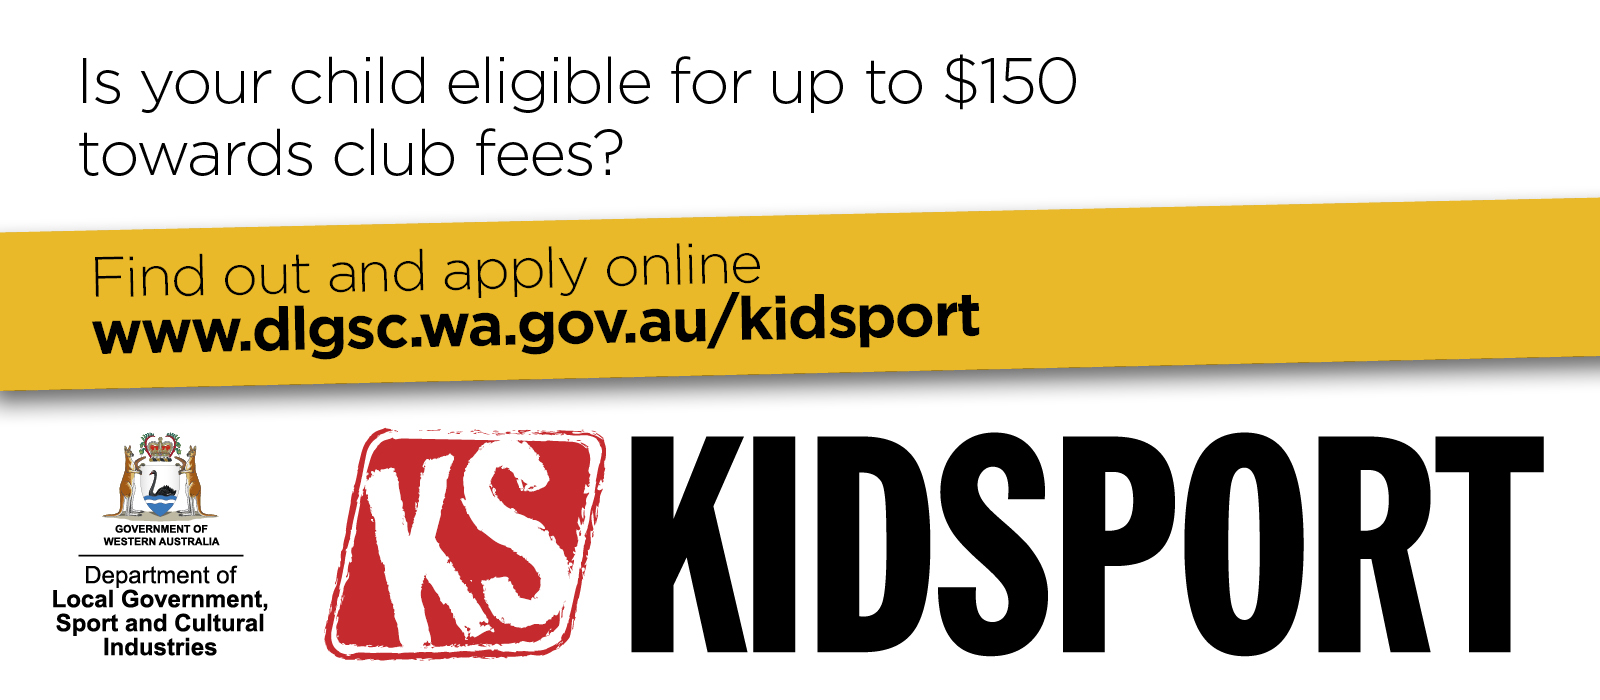 KidSport website images your child eligible words only